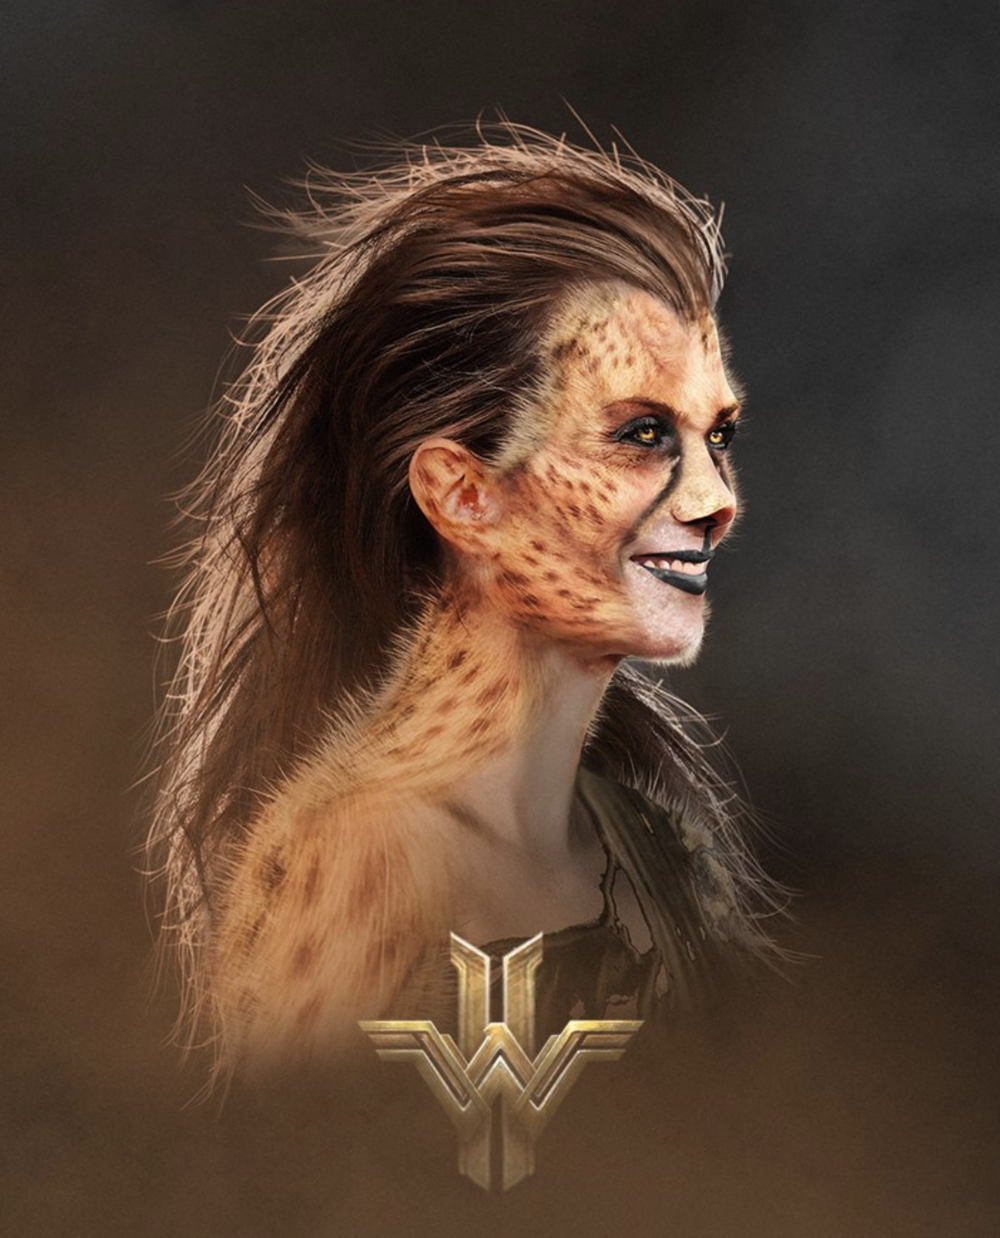 fan-art-imagines-kristen-wiig-as-cheetah-in-wonder-woman-21